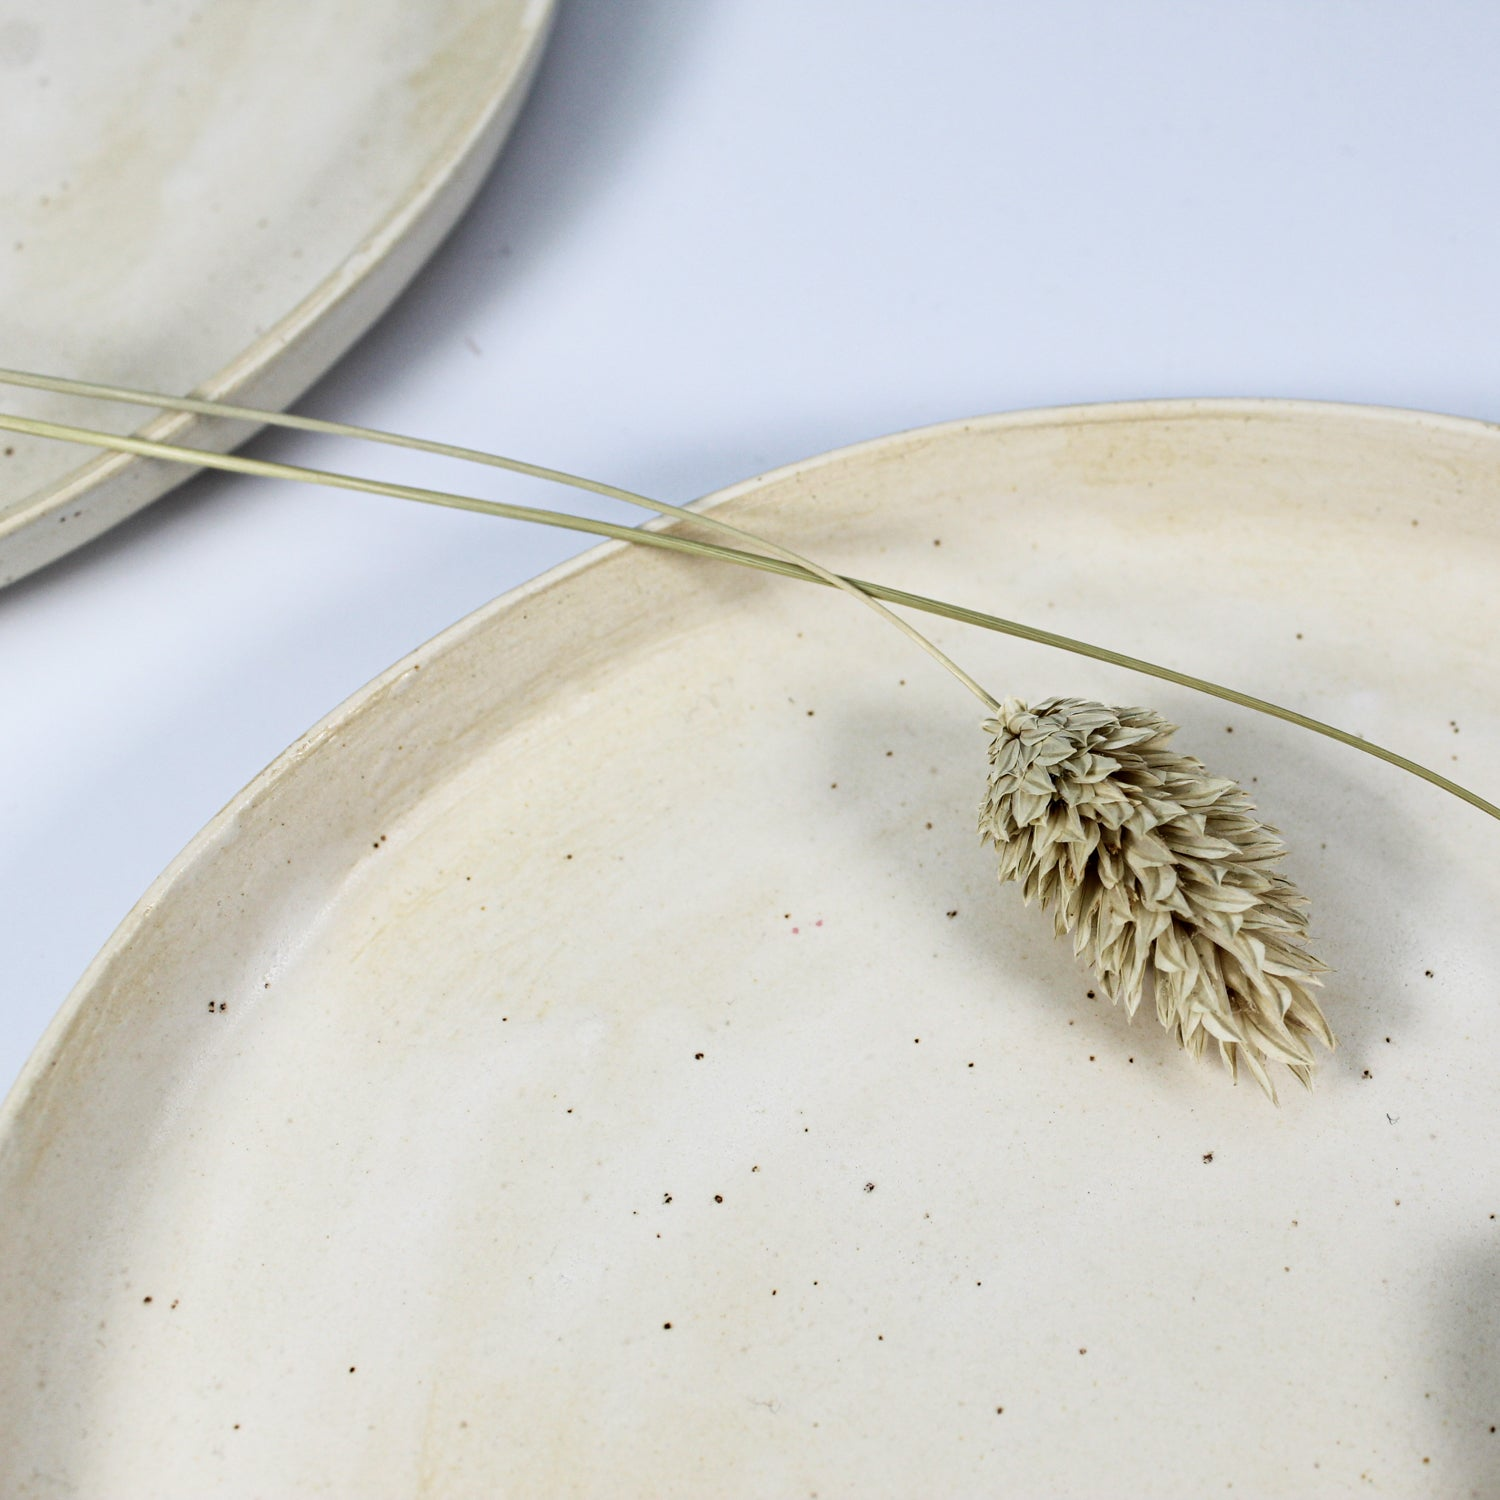 Close up of cream speckled ceramic side plate with dried grass on it